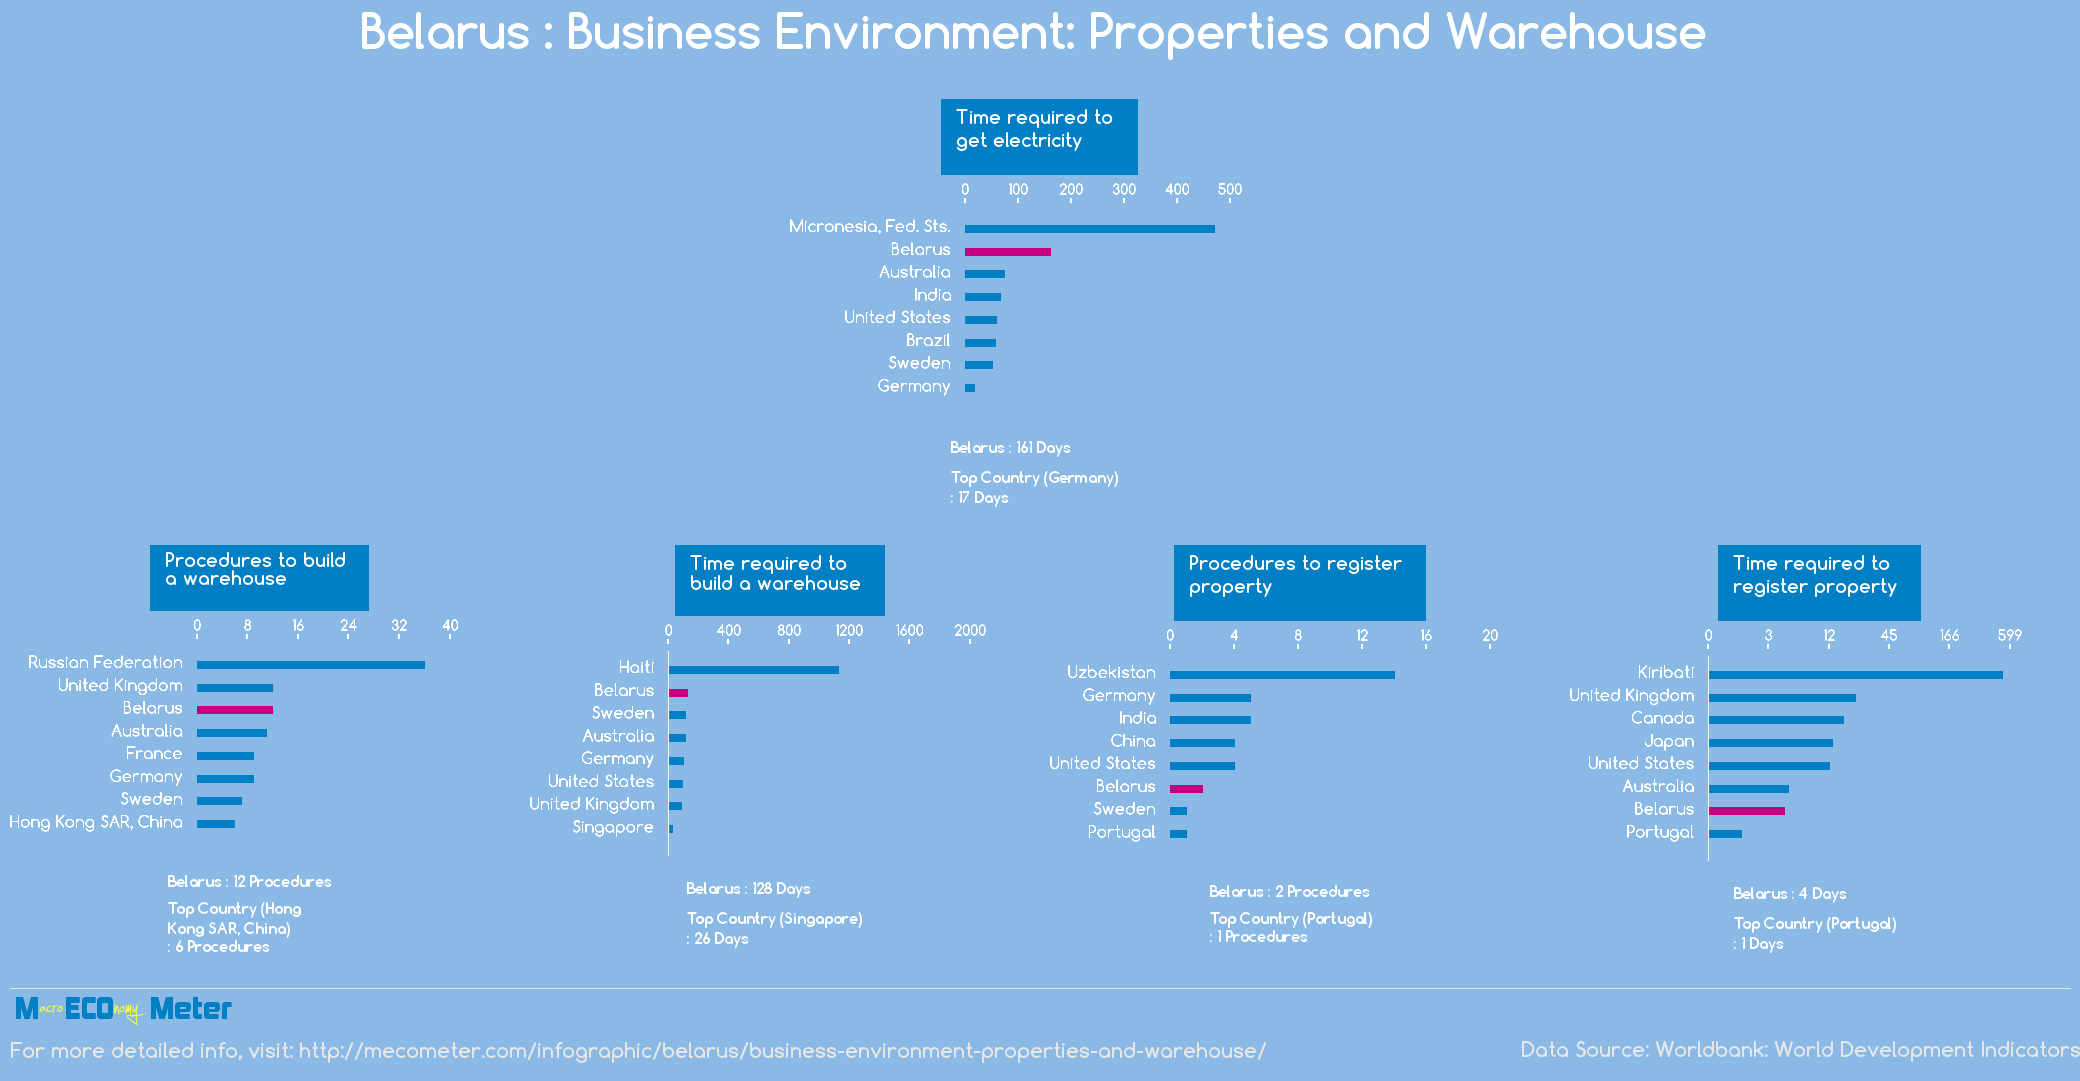 Belarus : Business Environment: Properties and Warehouse